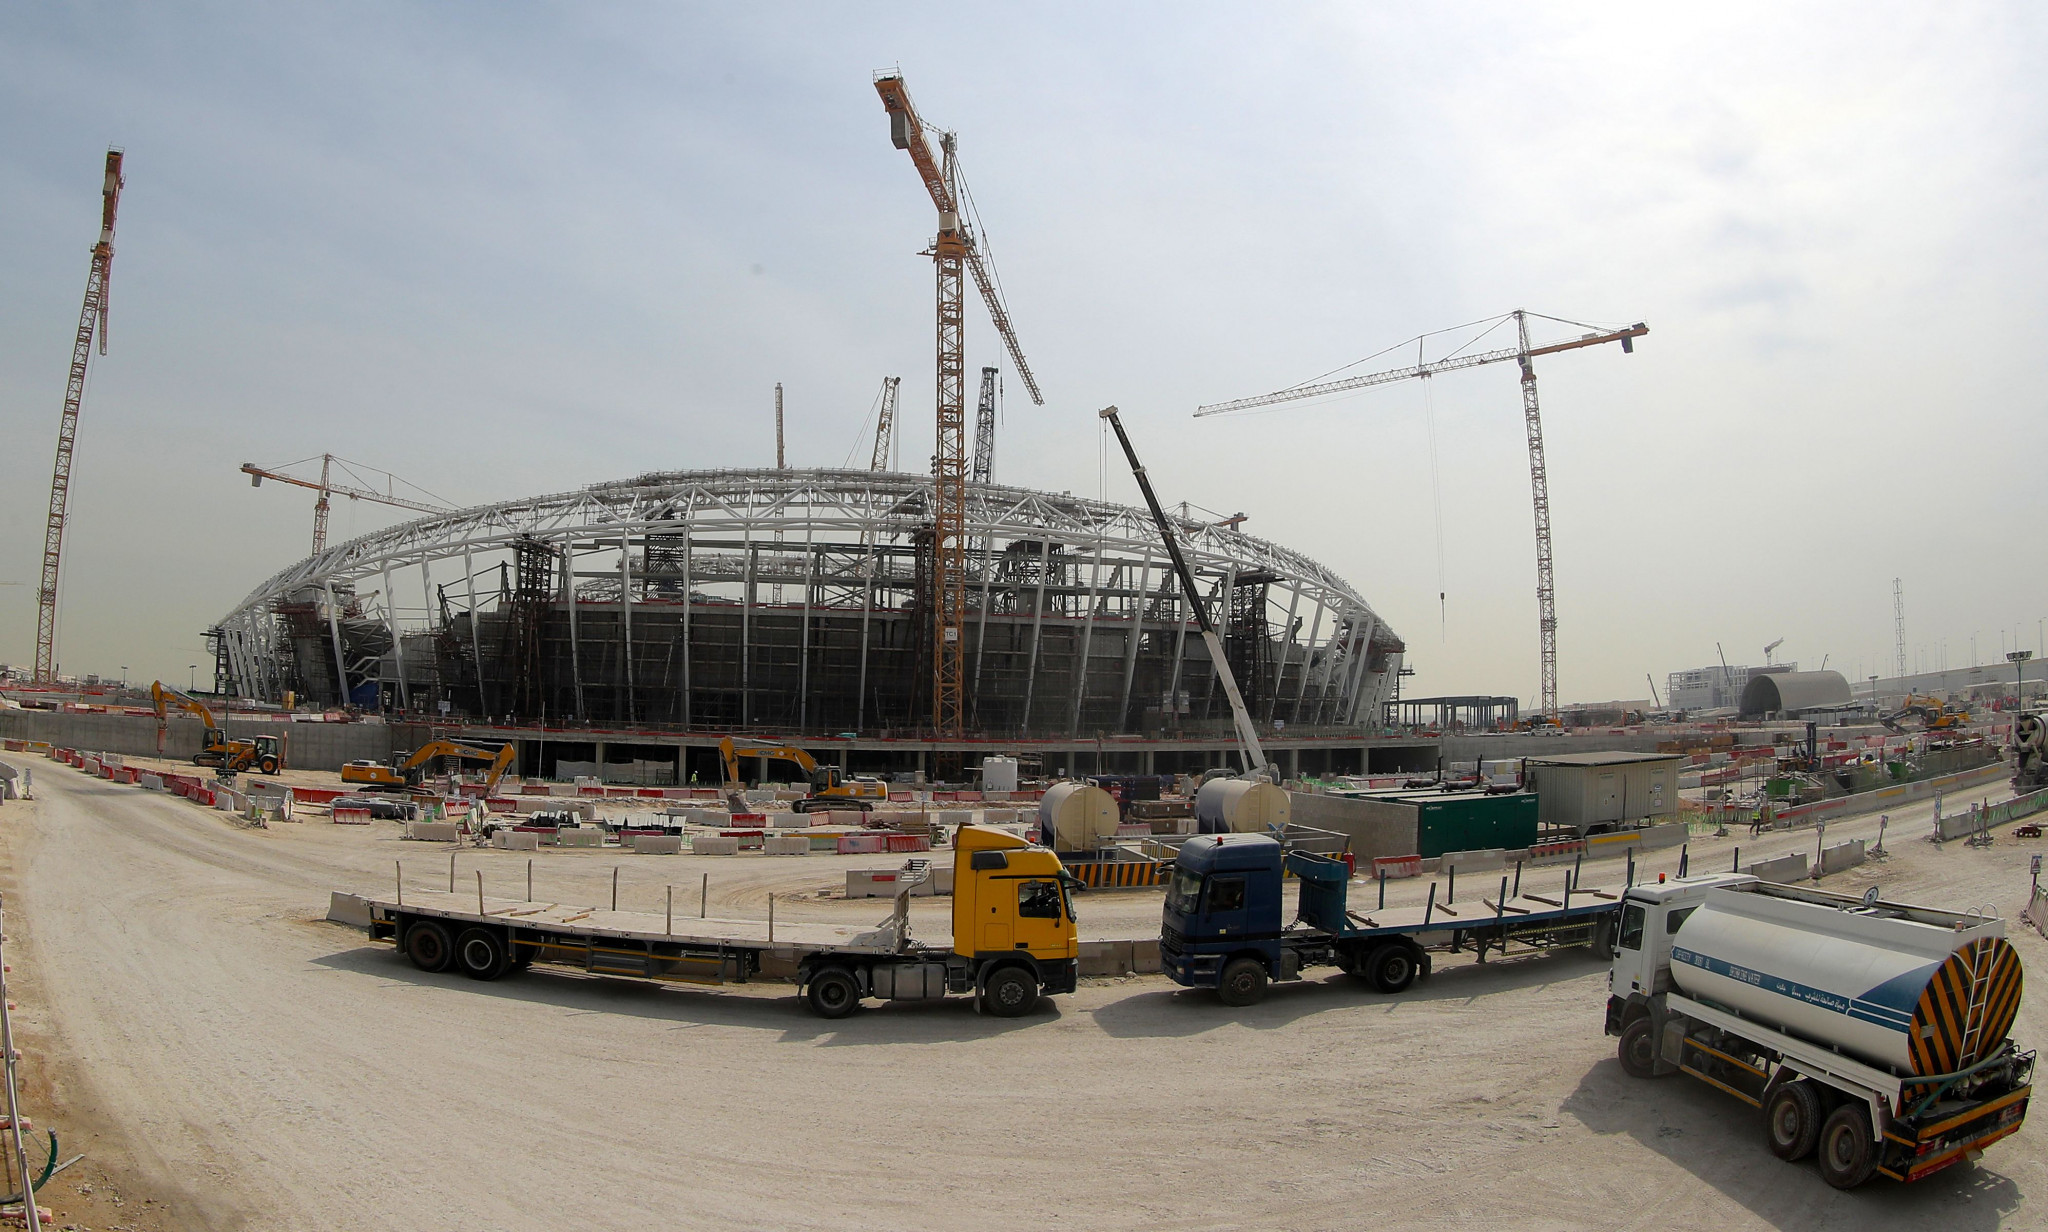 Investigation launched after man dies at Qatar 2022 World Cup venue